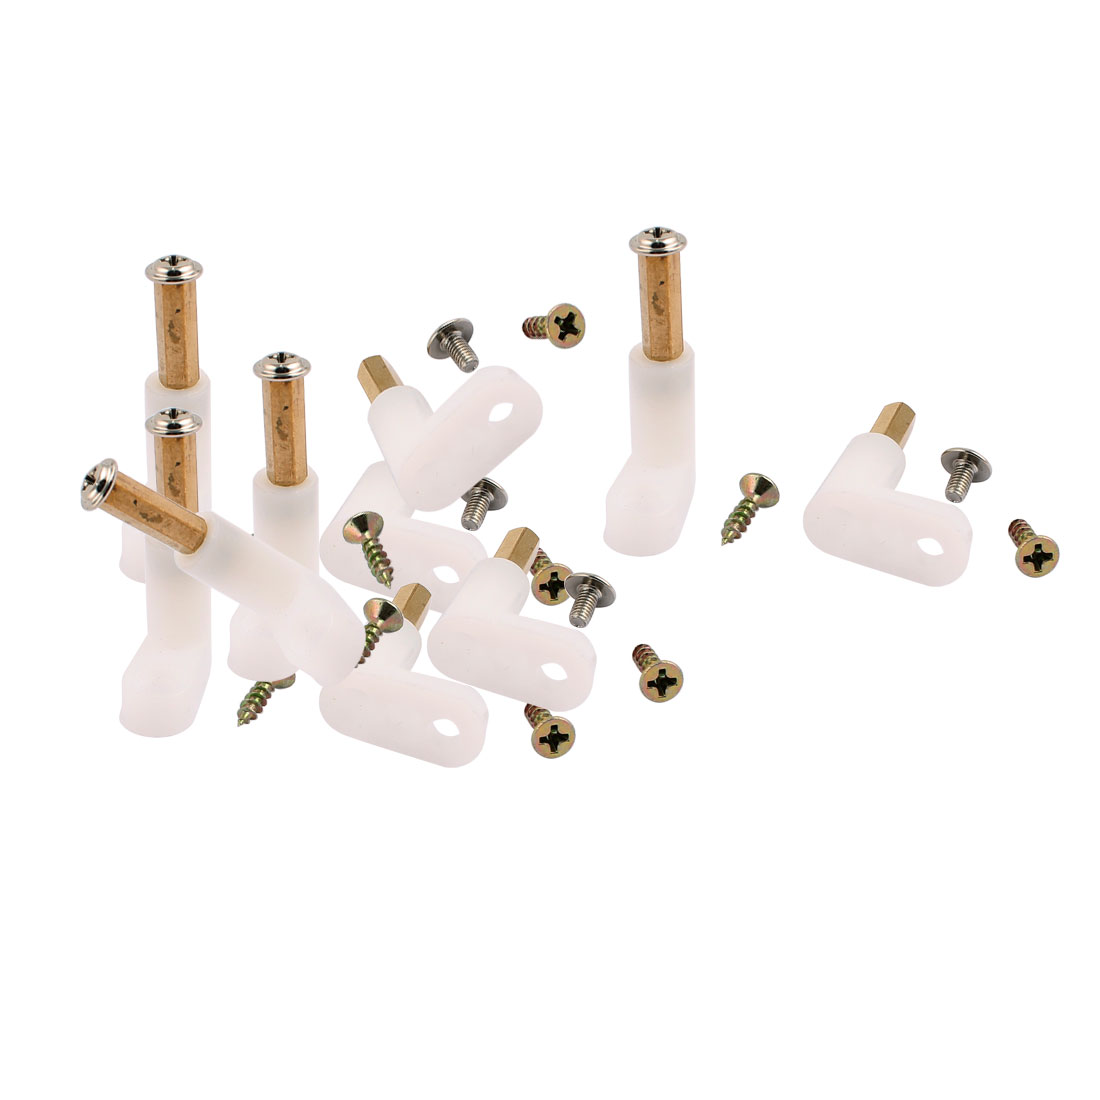 10 Pcs L Shape Insulated PCB Spacer 35mm Supporting Height w Self-Tapping Machine Screw